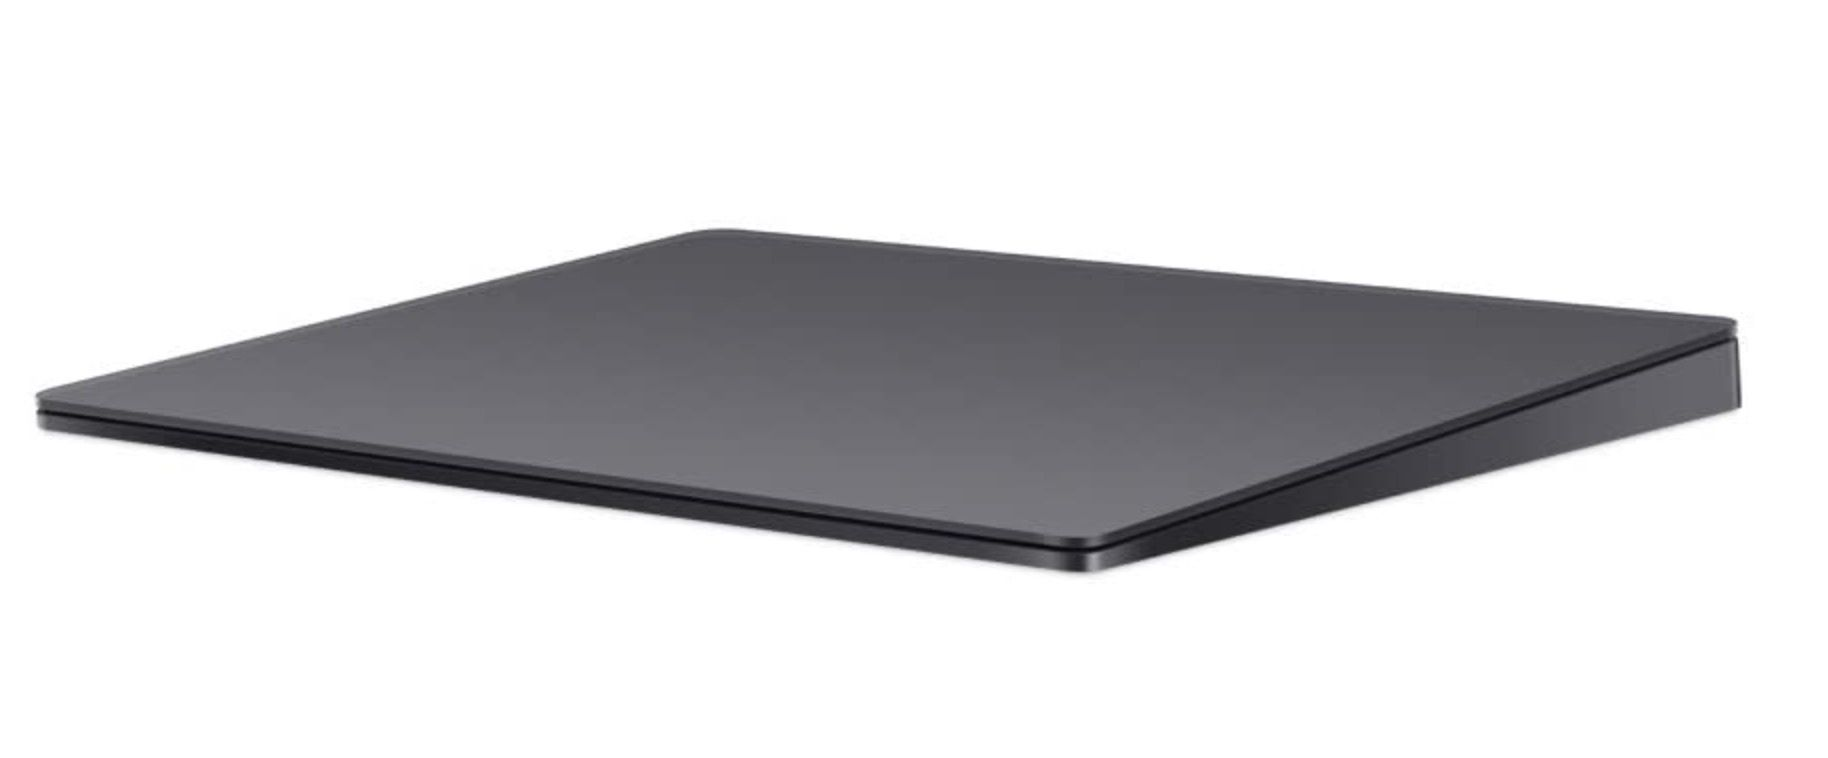 10. Apple Magic Trackpad 2